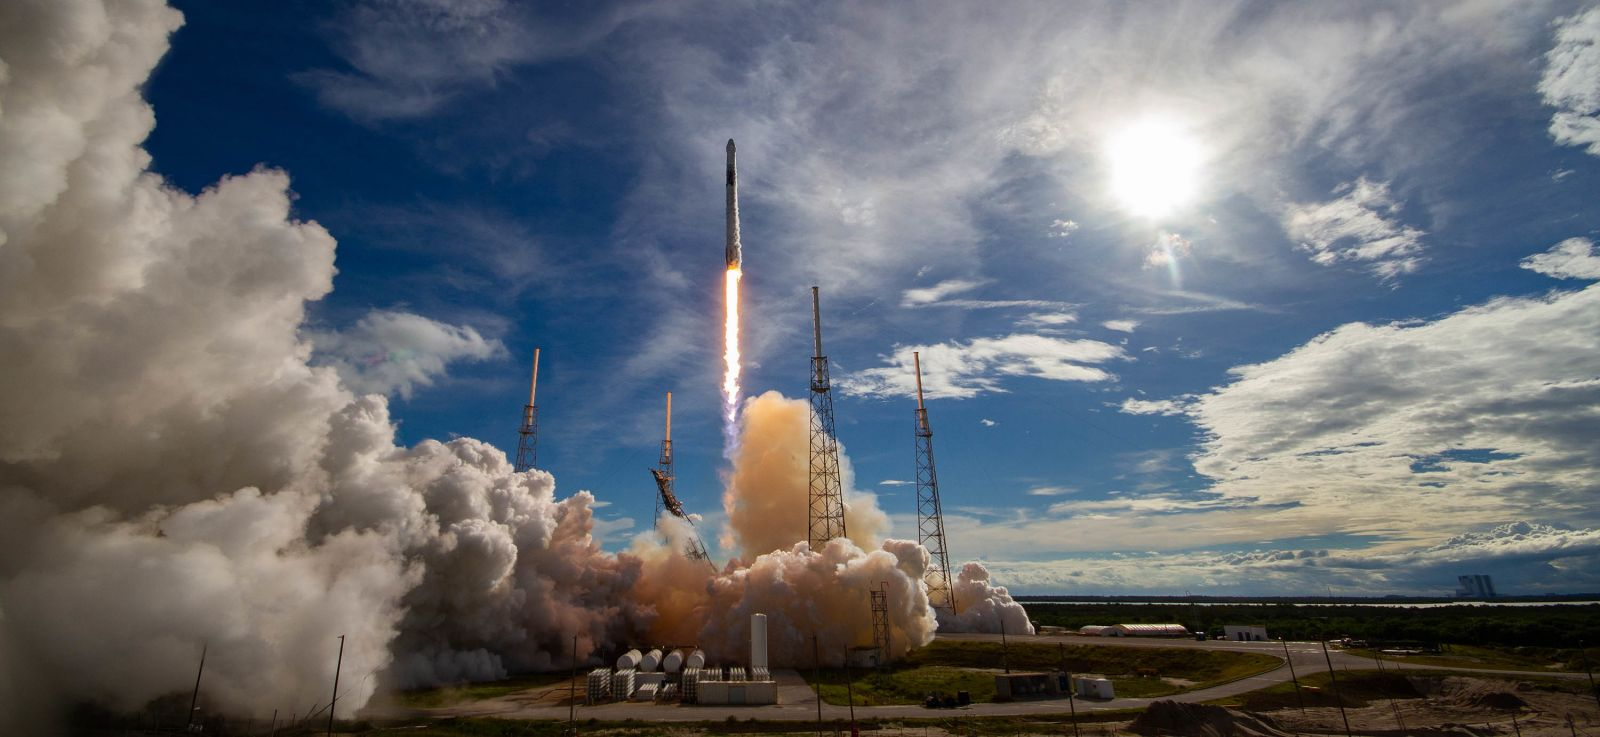 Stock photo of a SpaceX Falcon 9 rocket launching from Cape Canaveral Air Force Station's Space Launch Complex 40 in Florida. Photo Credit: SpaceX